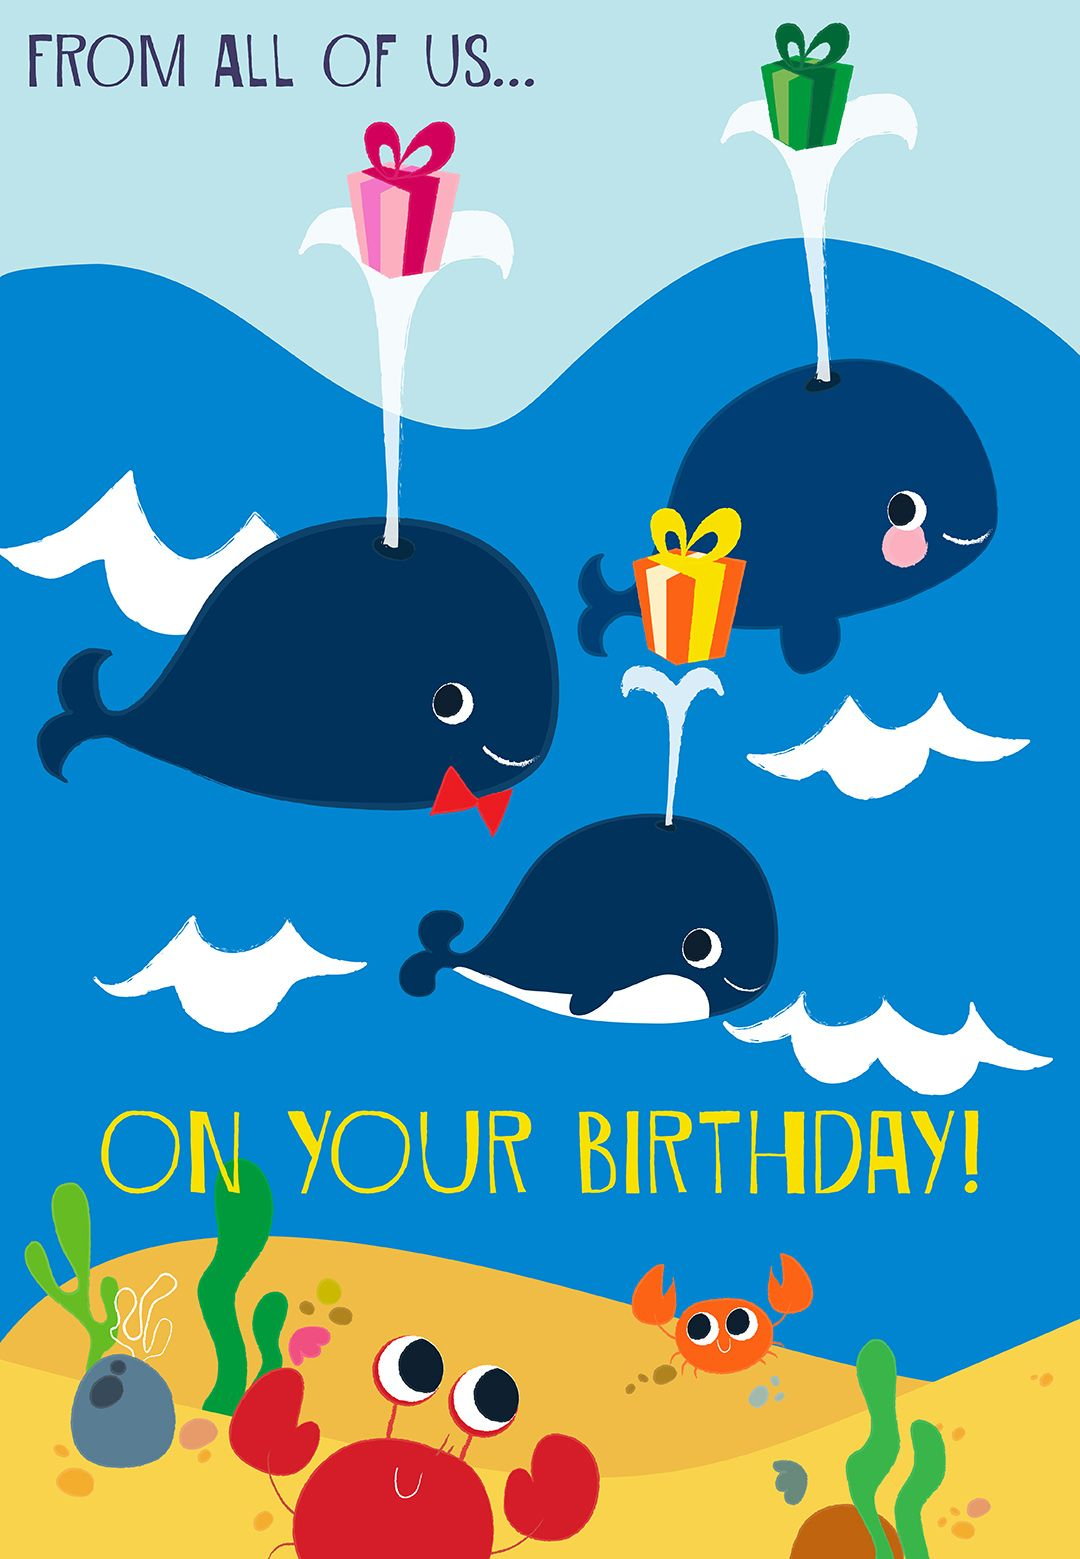 birthday card from all of us printable ; 9514b62f09105f93f9005827384c6231